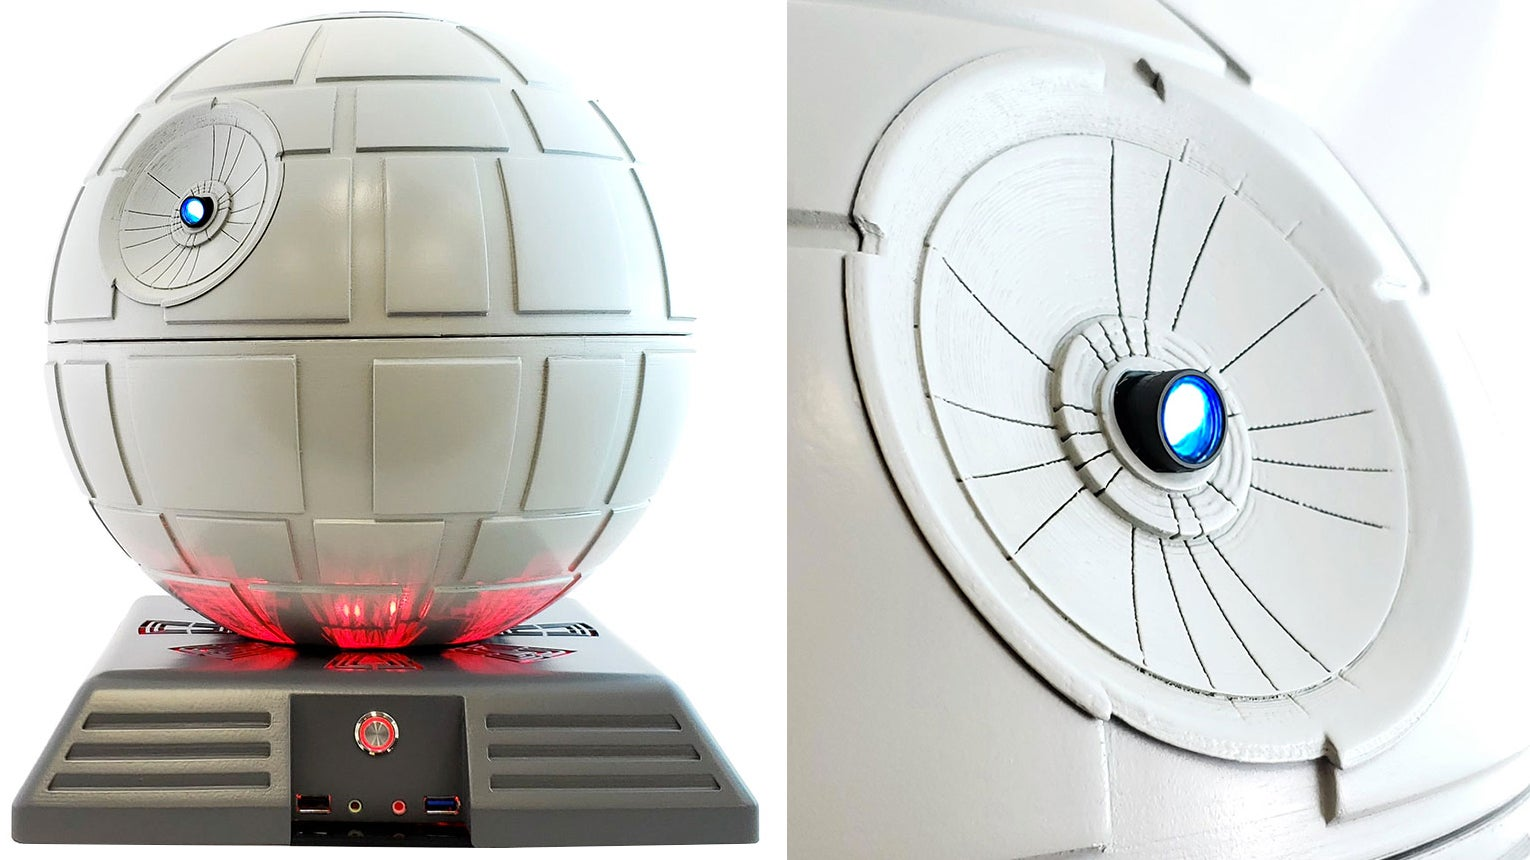 You Can Upgrade This Star Wars Death Star PC Case With A Superlaser Video Projector